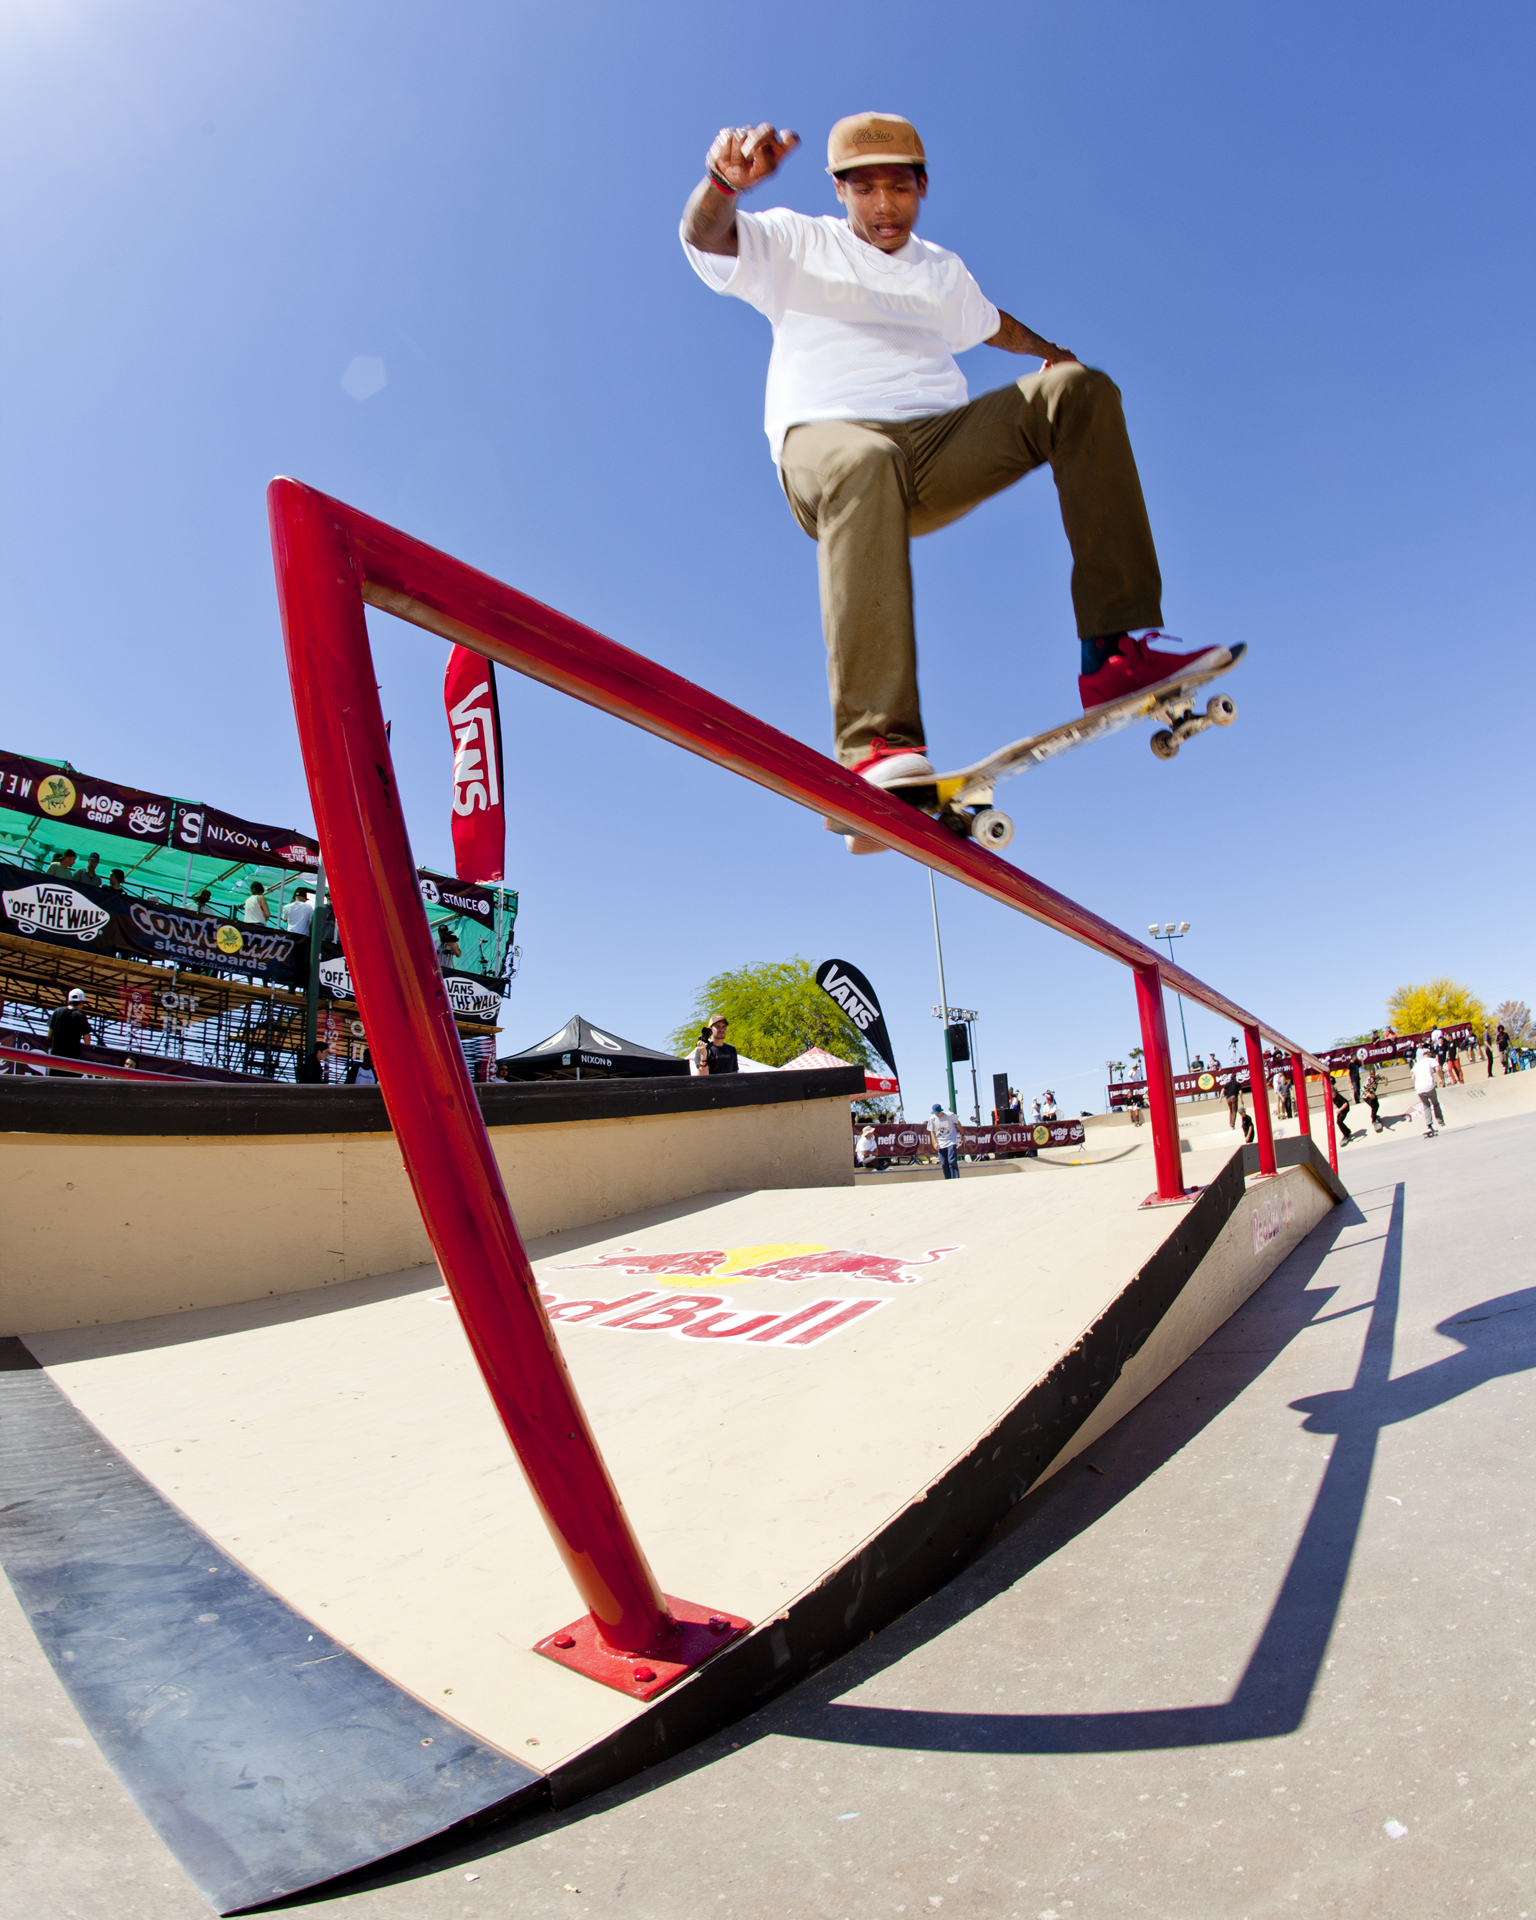 Boo Johnson, noseblunt